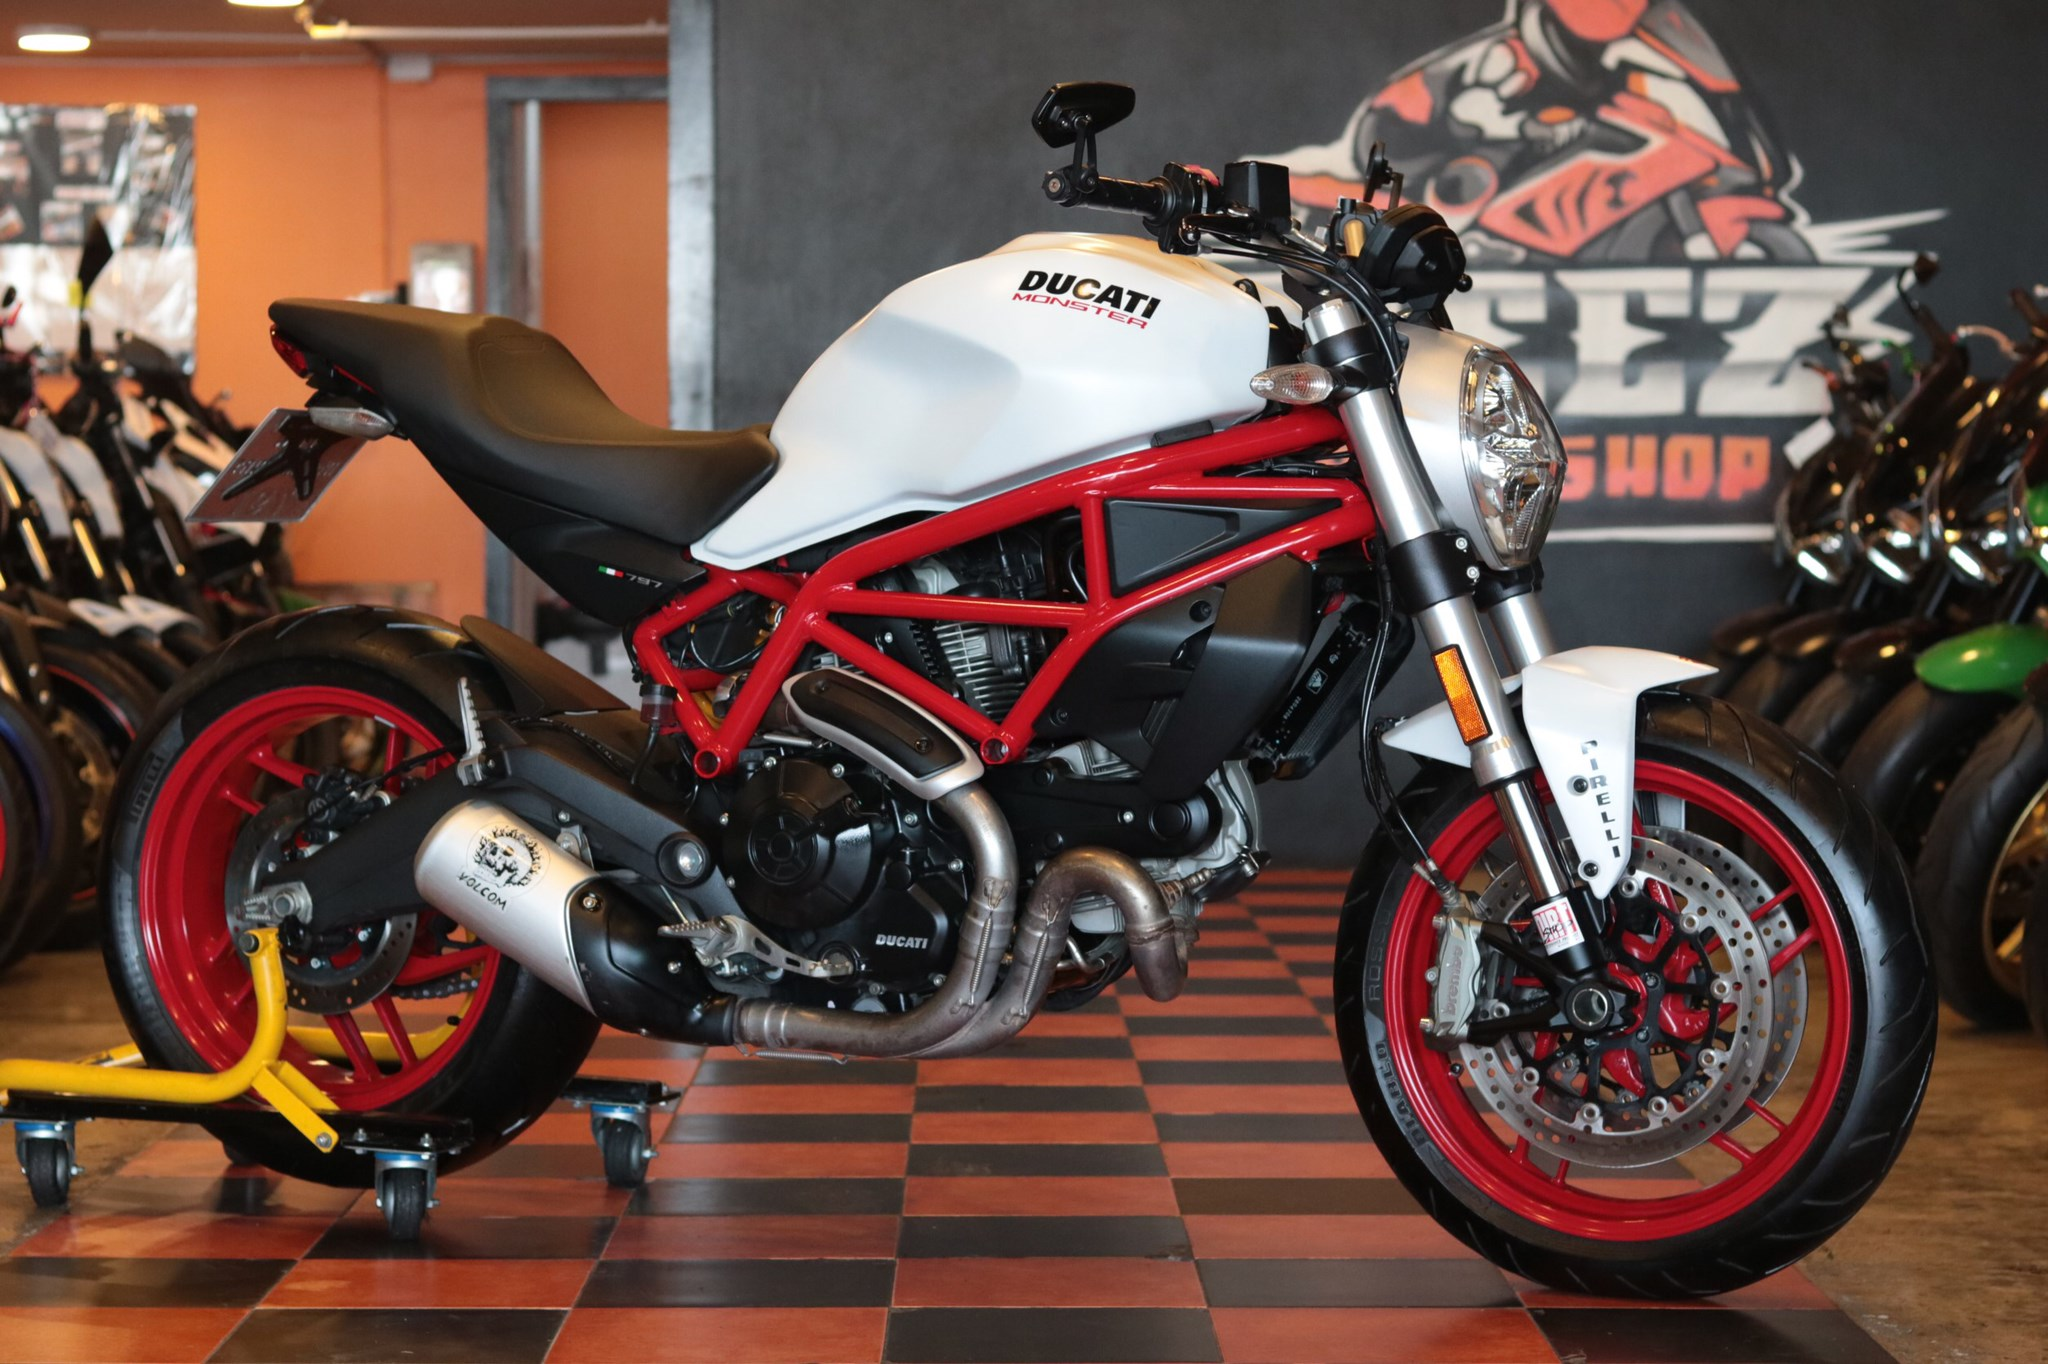 ขาย Ducati Monster 797 ABS ปี 2017